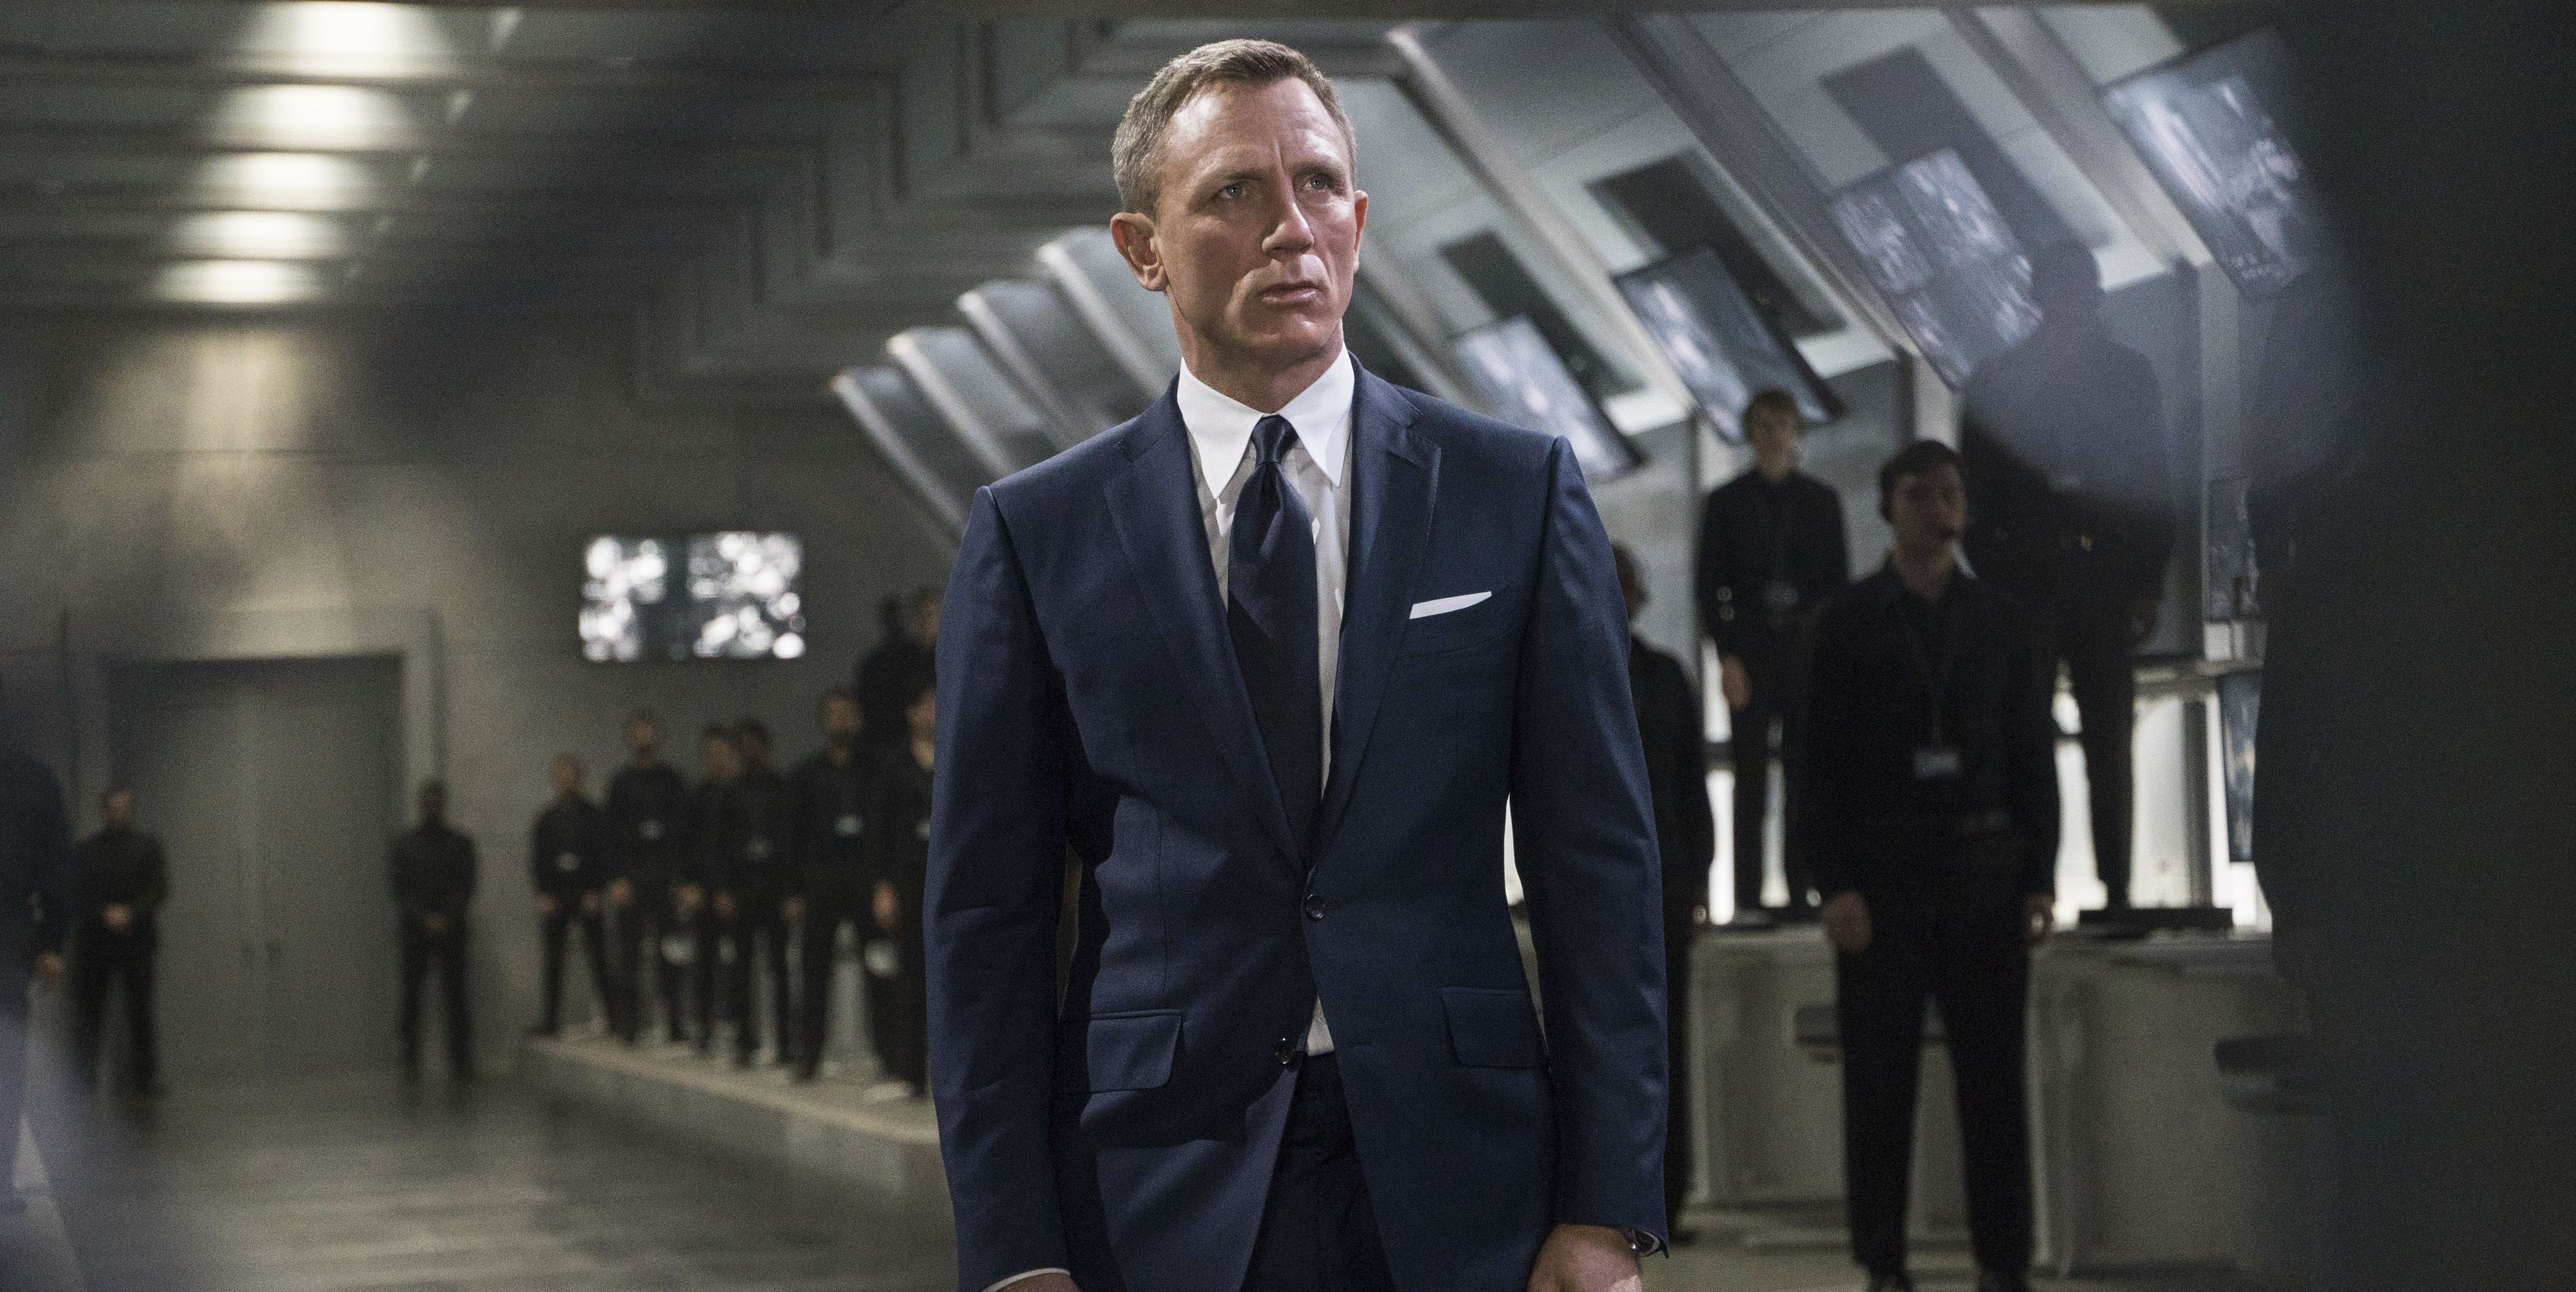 The Bond 25 Title, No Time to Die, and Release Date Have Finally Been Announced